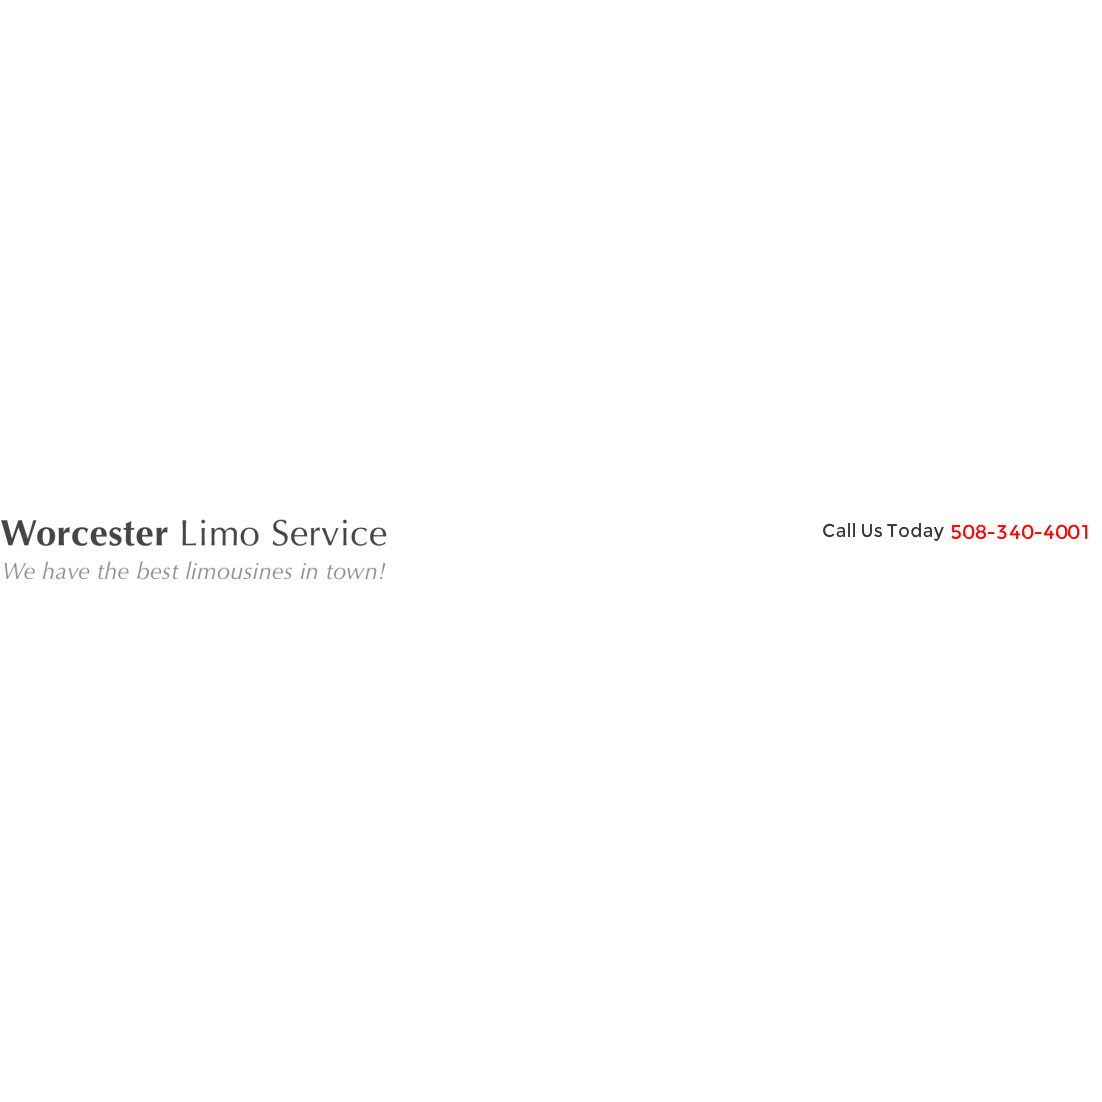 Worcester Limo Service